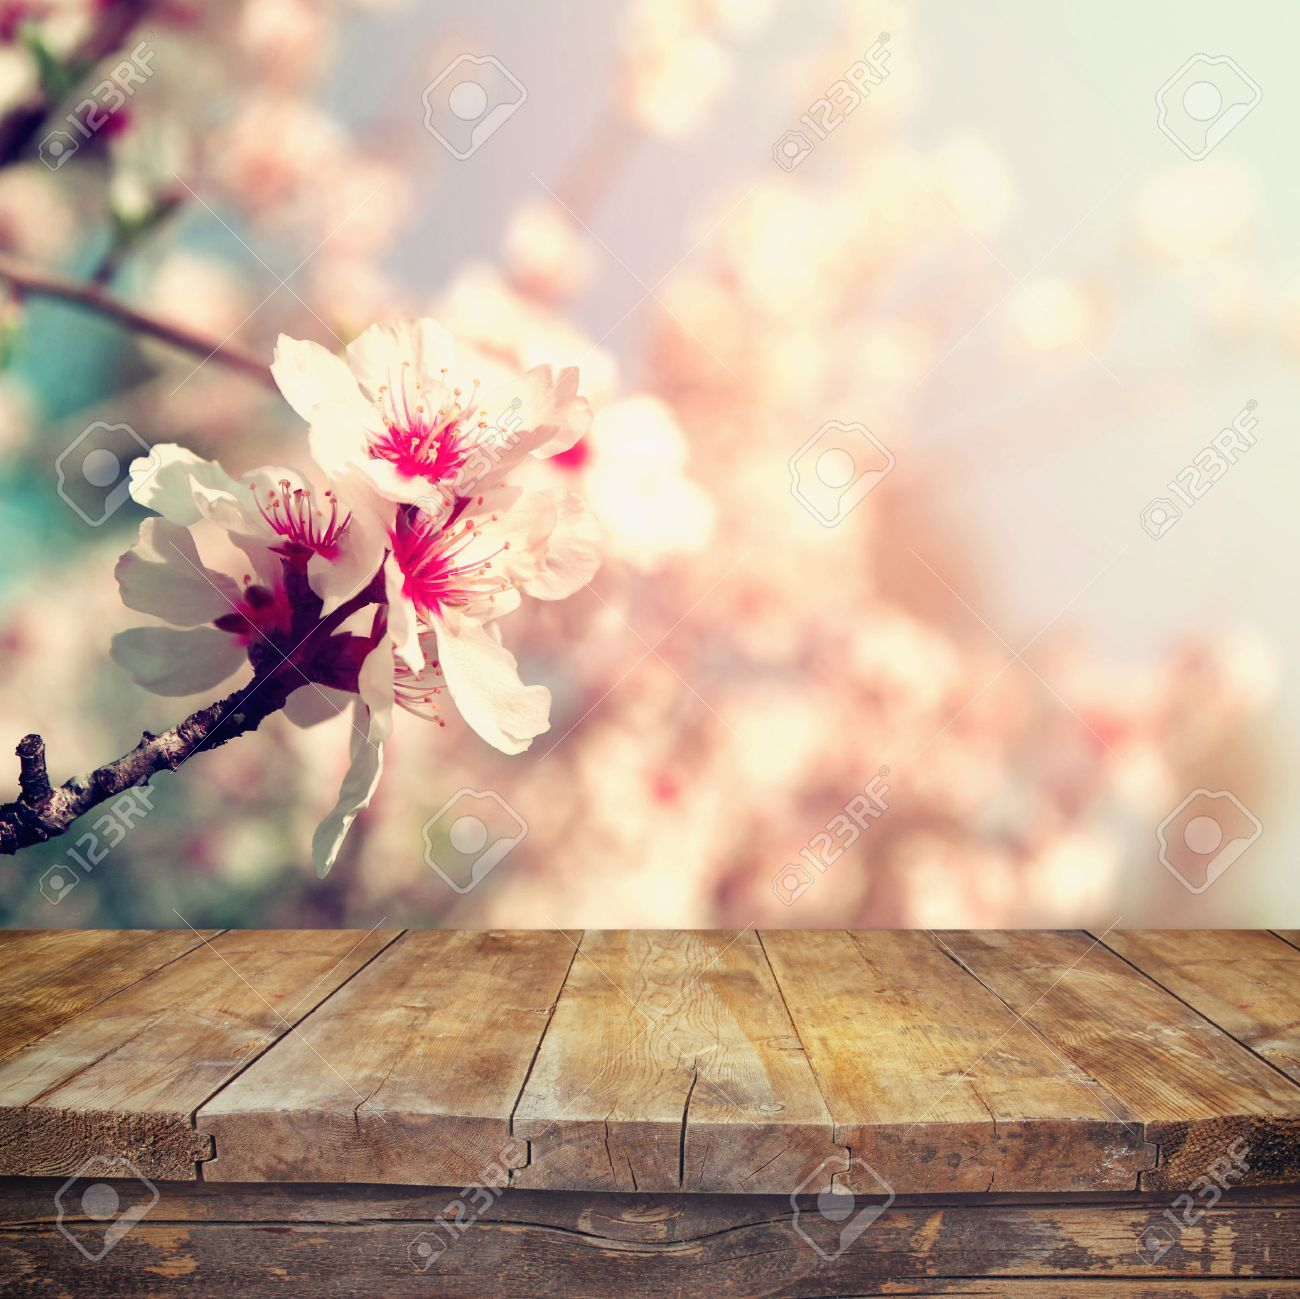 wooden rustic table in front of spring white cherry blossoms tree. vintage filtered image. product display and picnic concept - 52575339